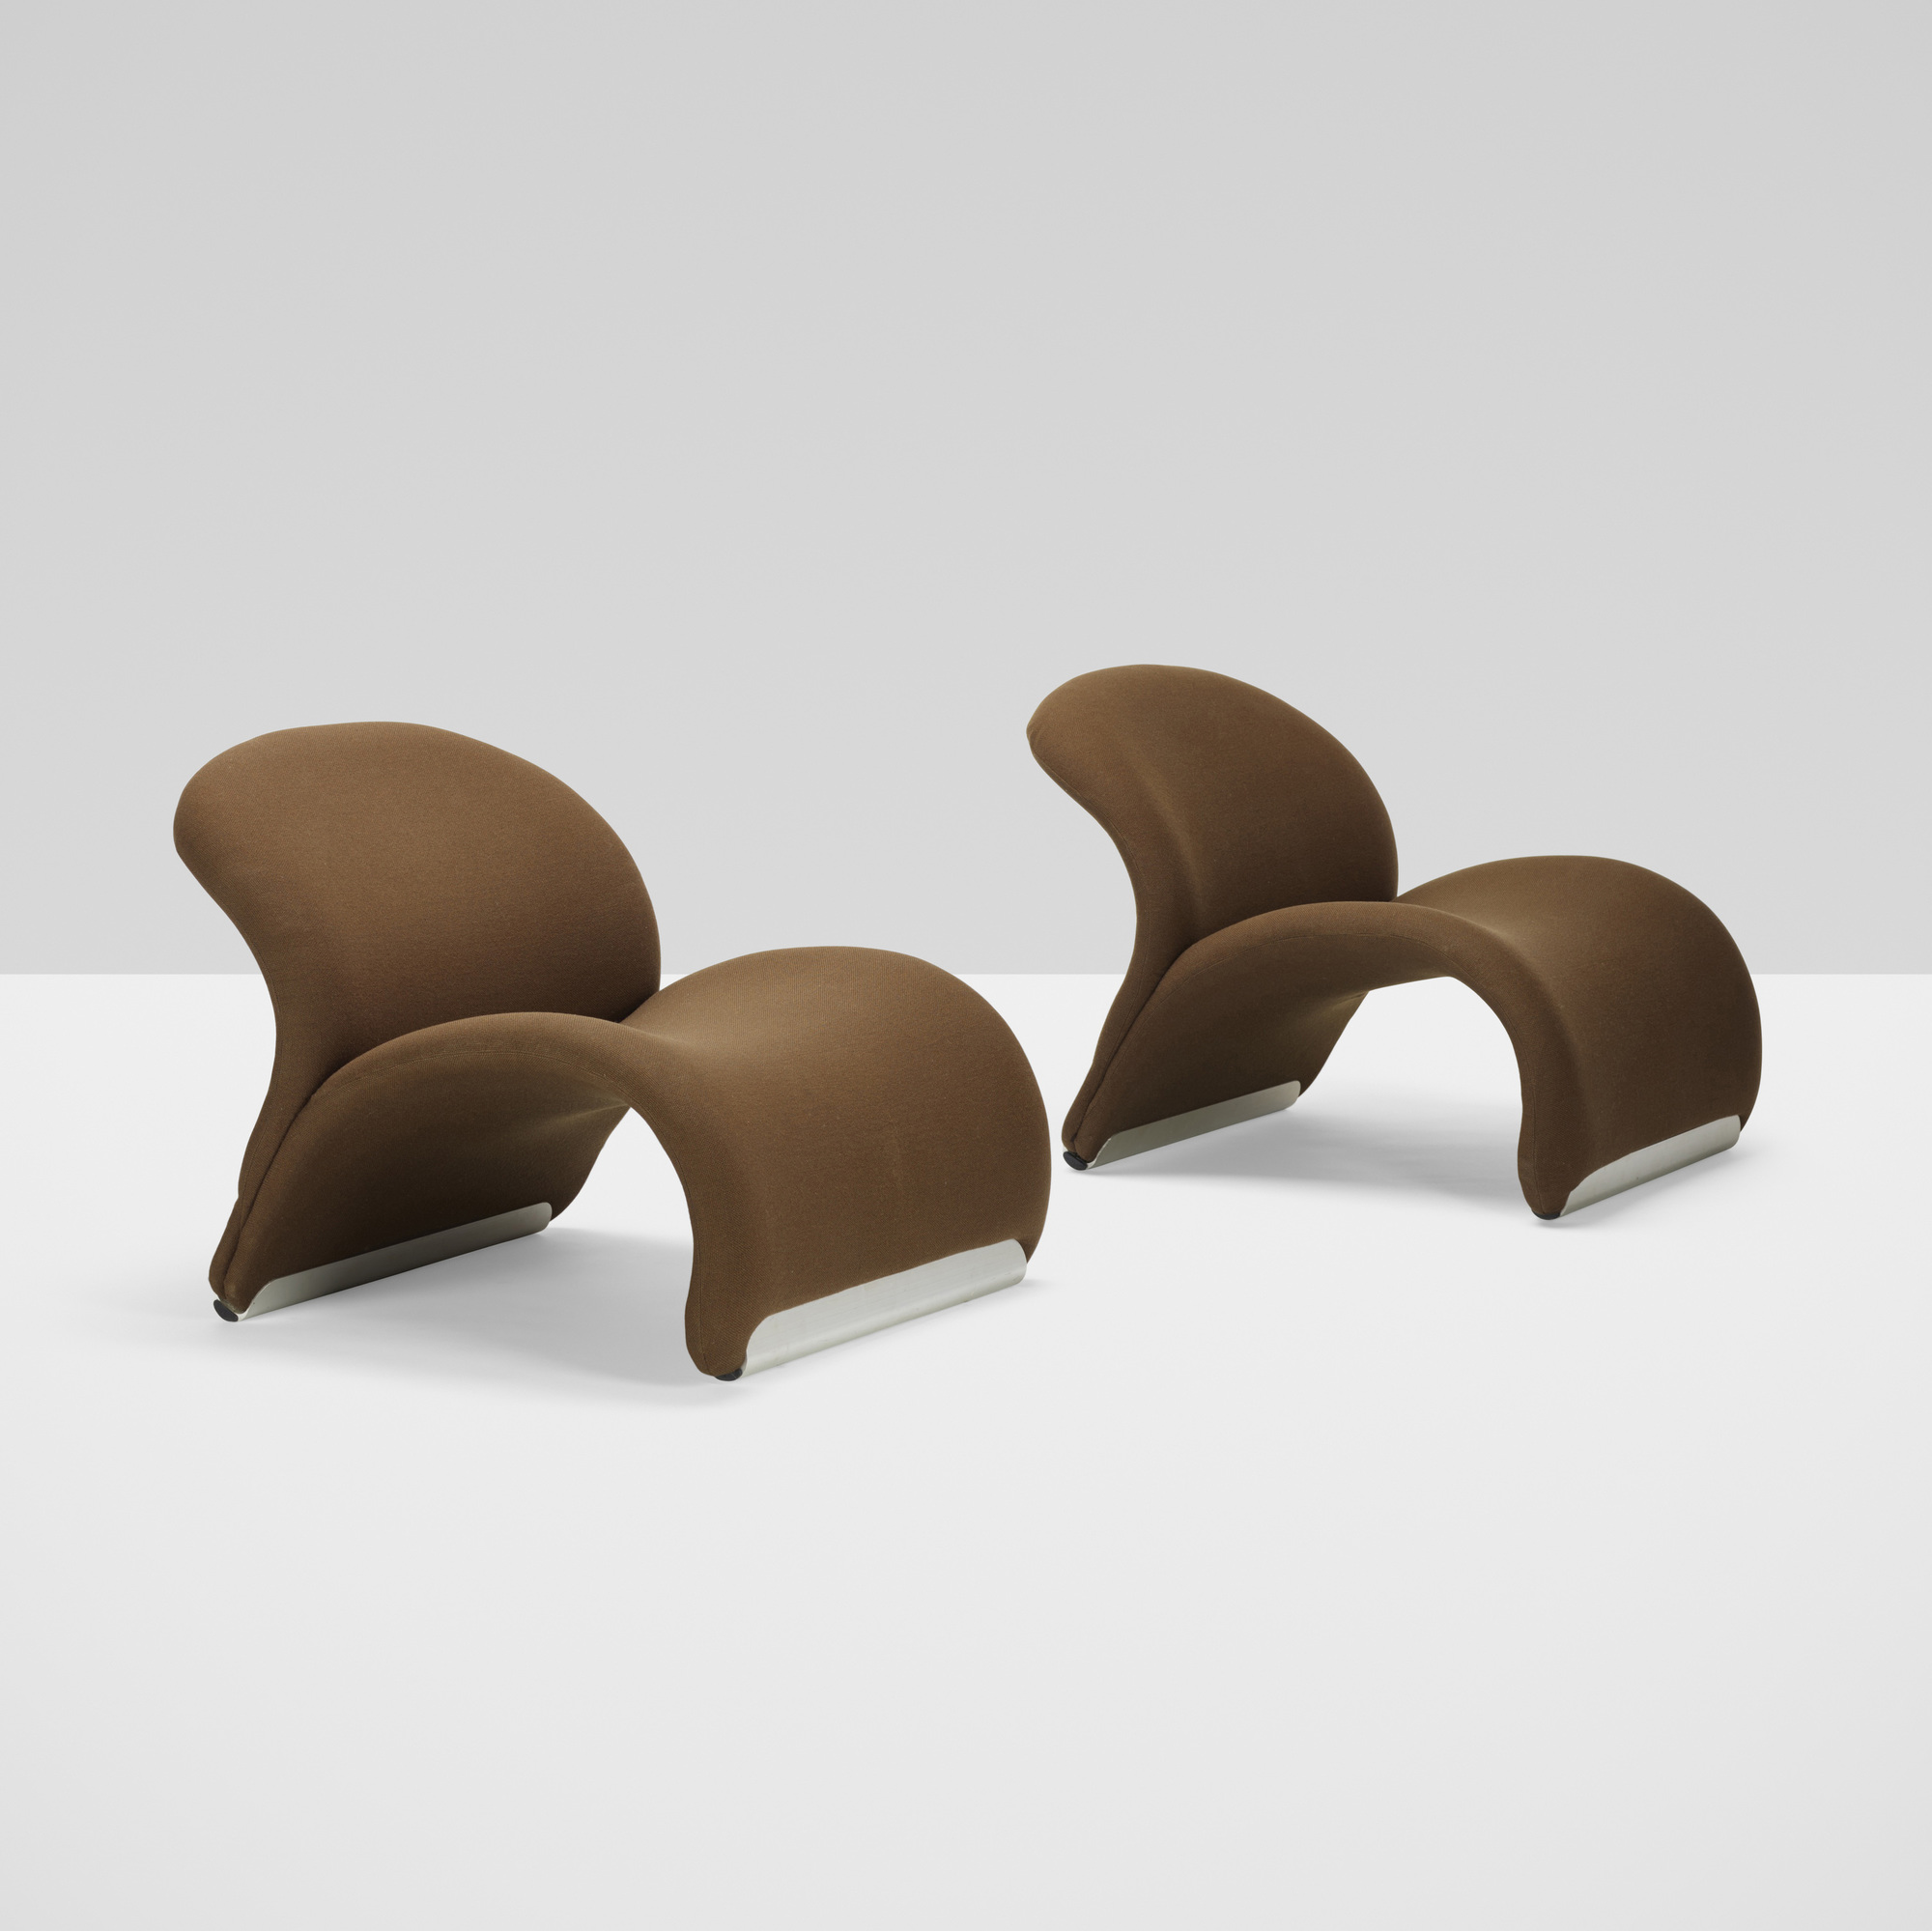 320: Pierre Paulin / Le Chat chairs model 574, pair (2 of 4)